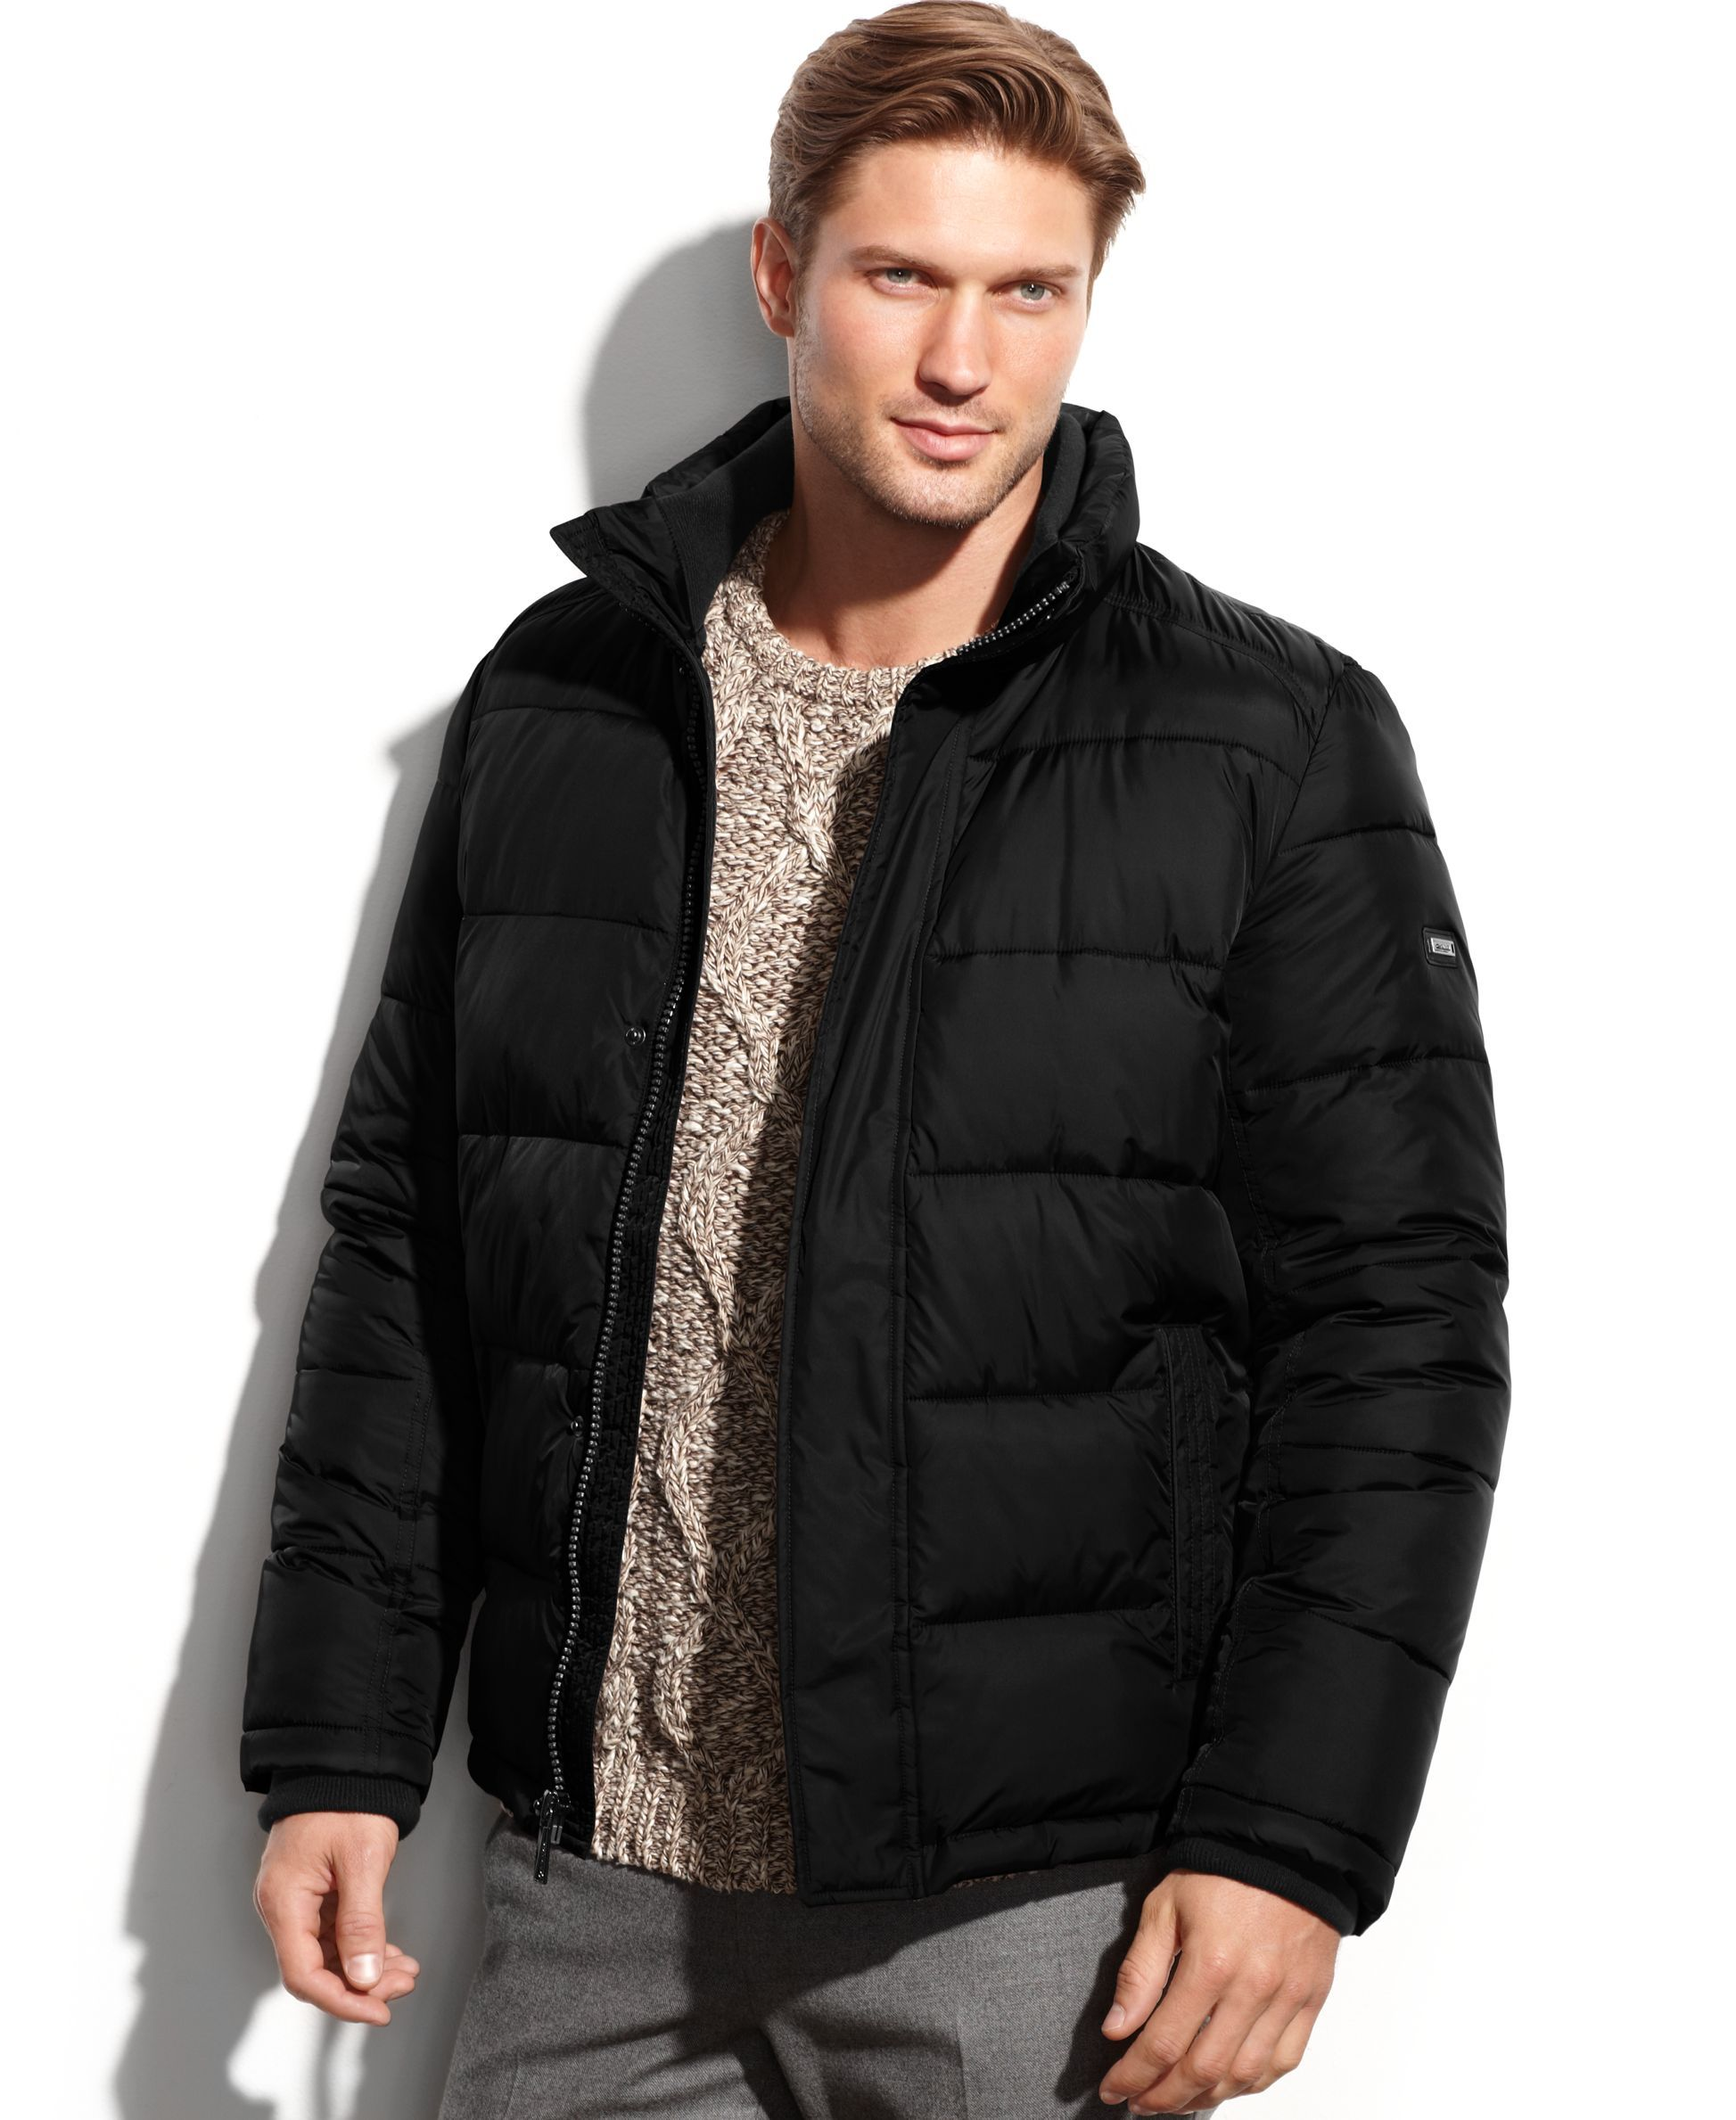 super specials where to buy hoard as a rare commodity Calvin Klein Solid Performance Puffer Jacket | Products ...